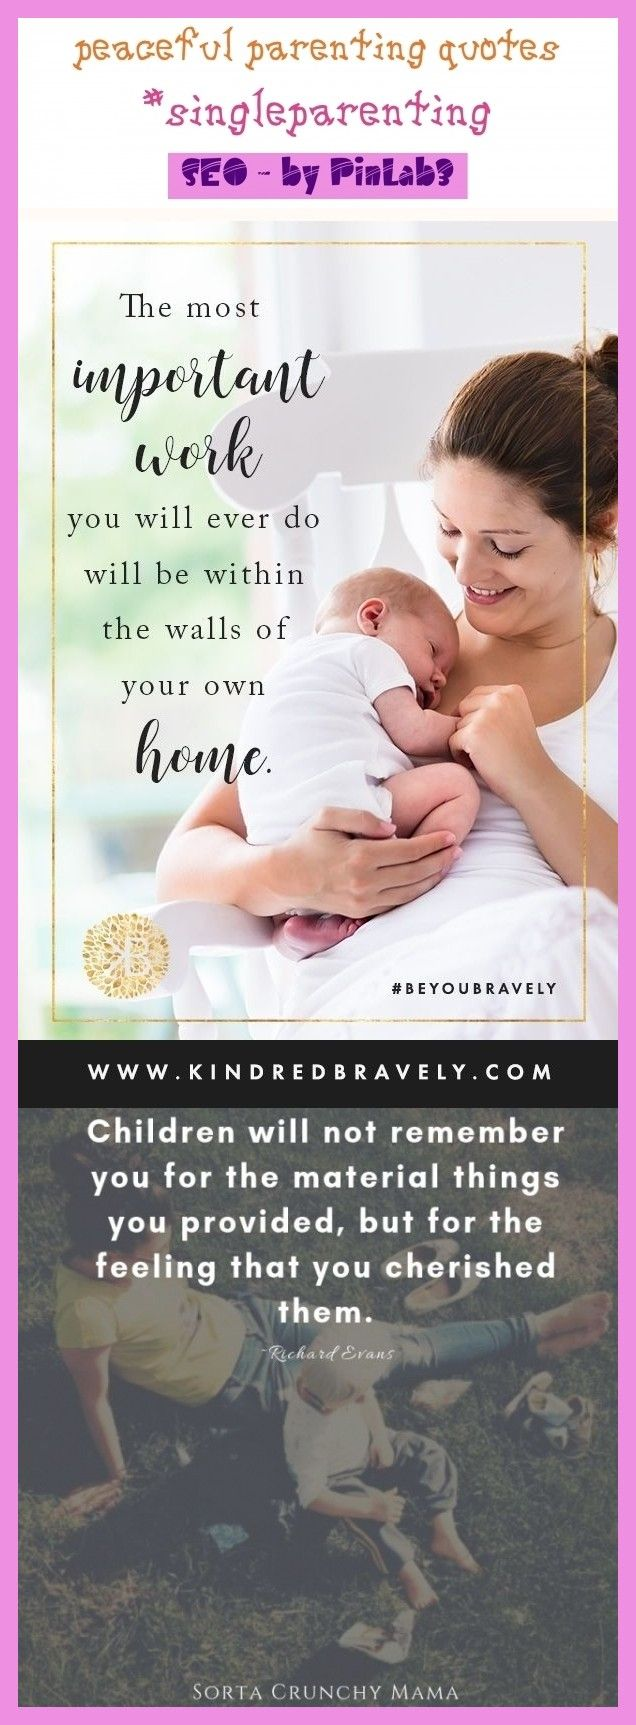 Photo of Peaceful parenting quotes #singleparenting #kids. peaceful parenting quotes, pea…